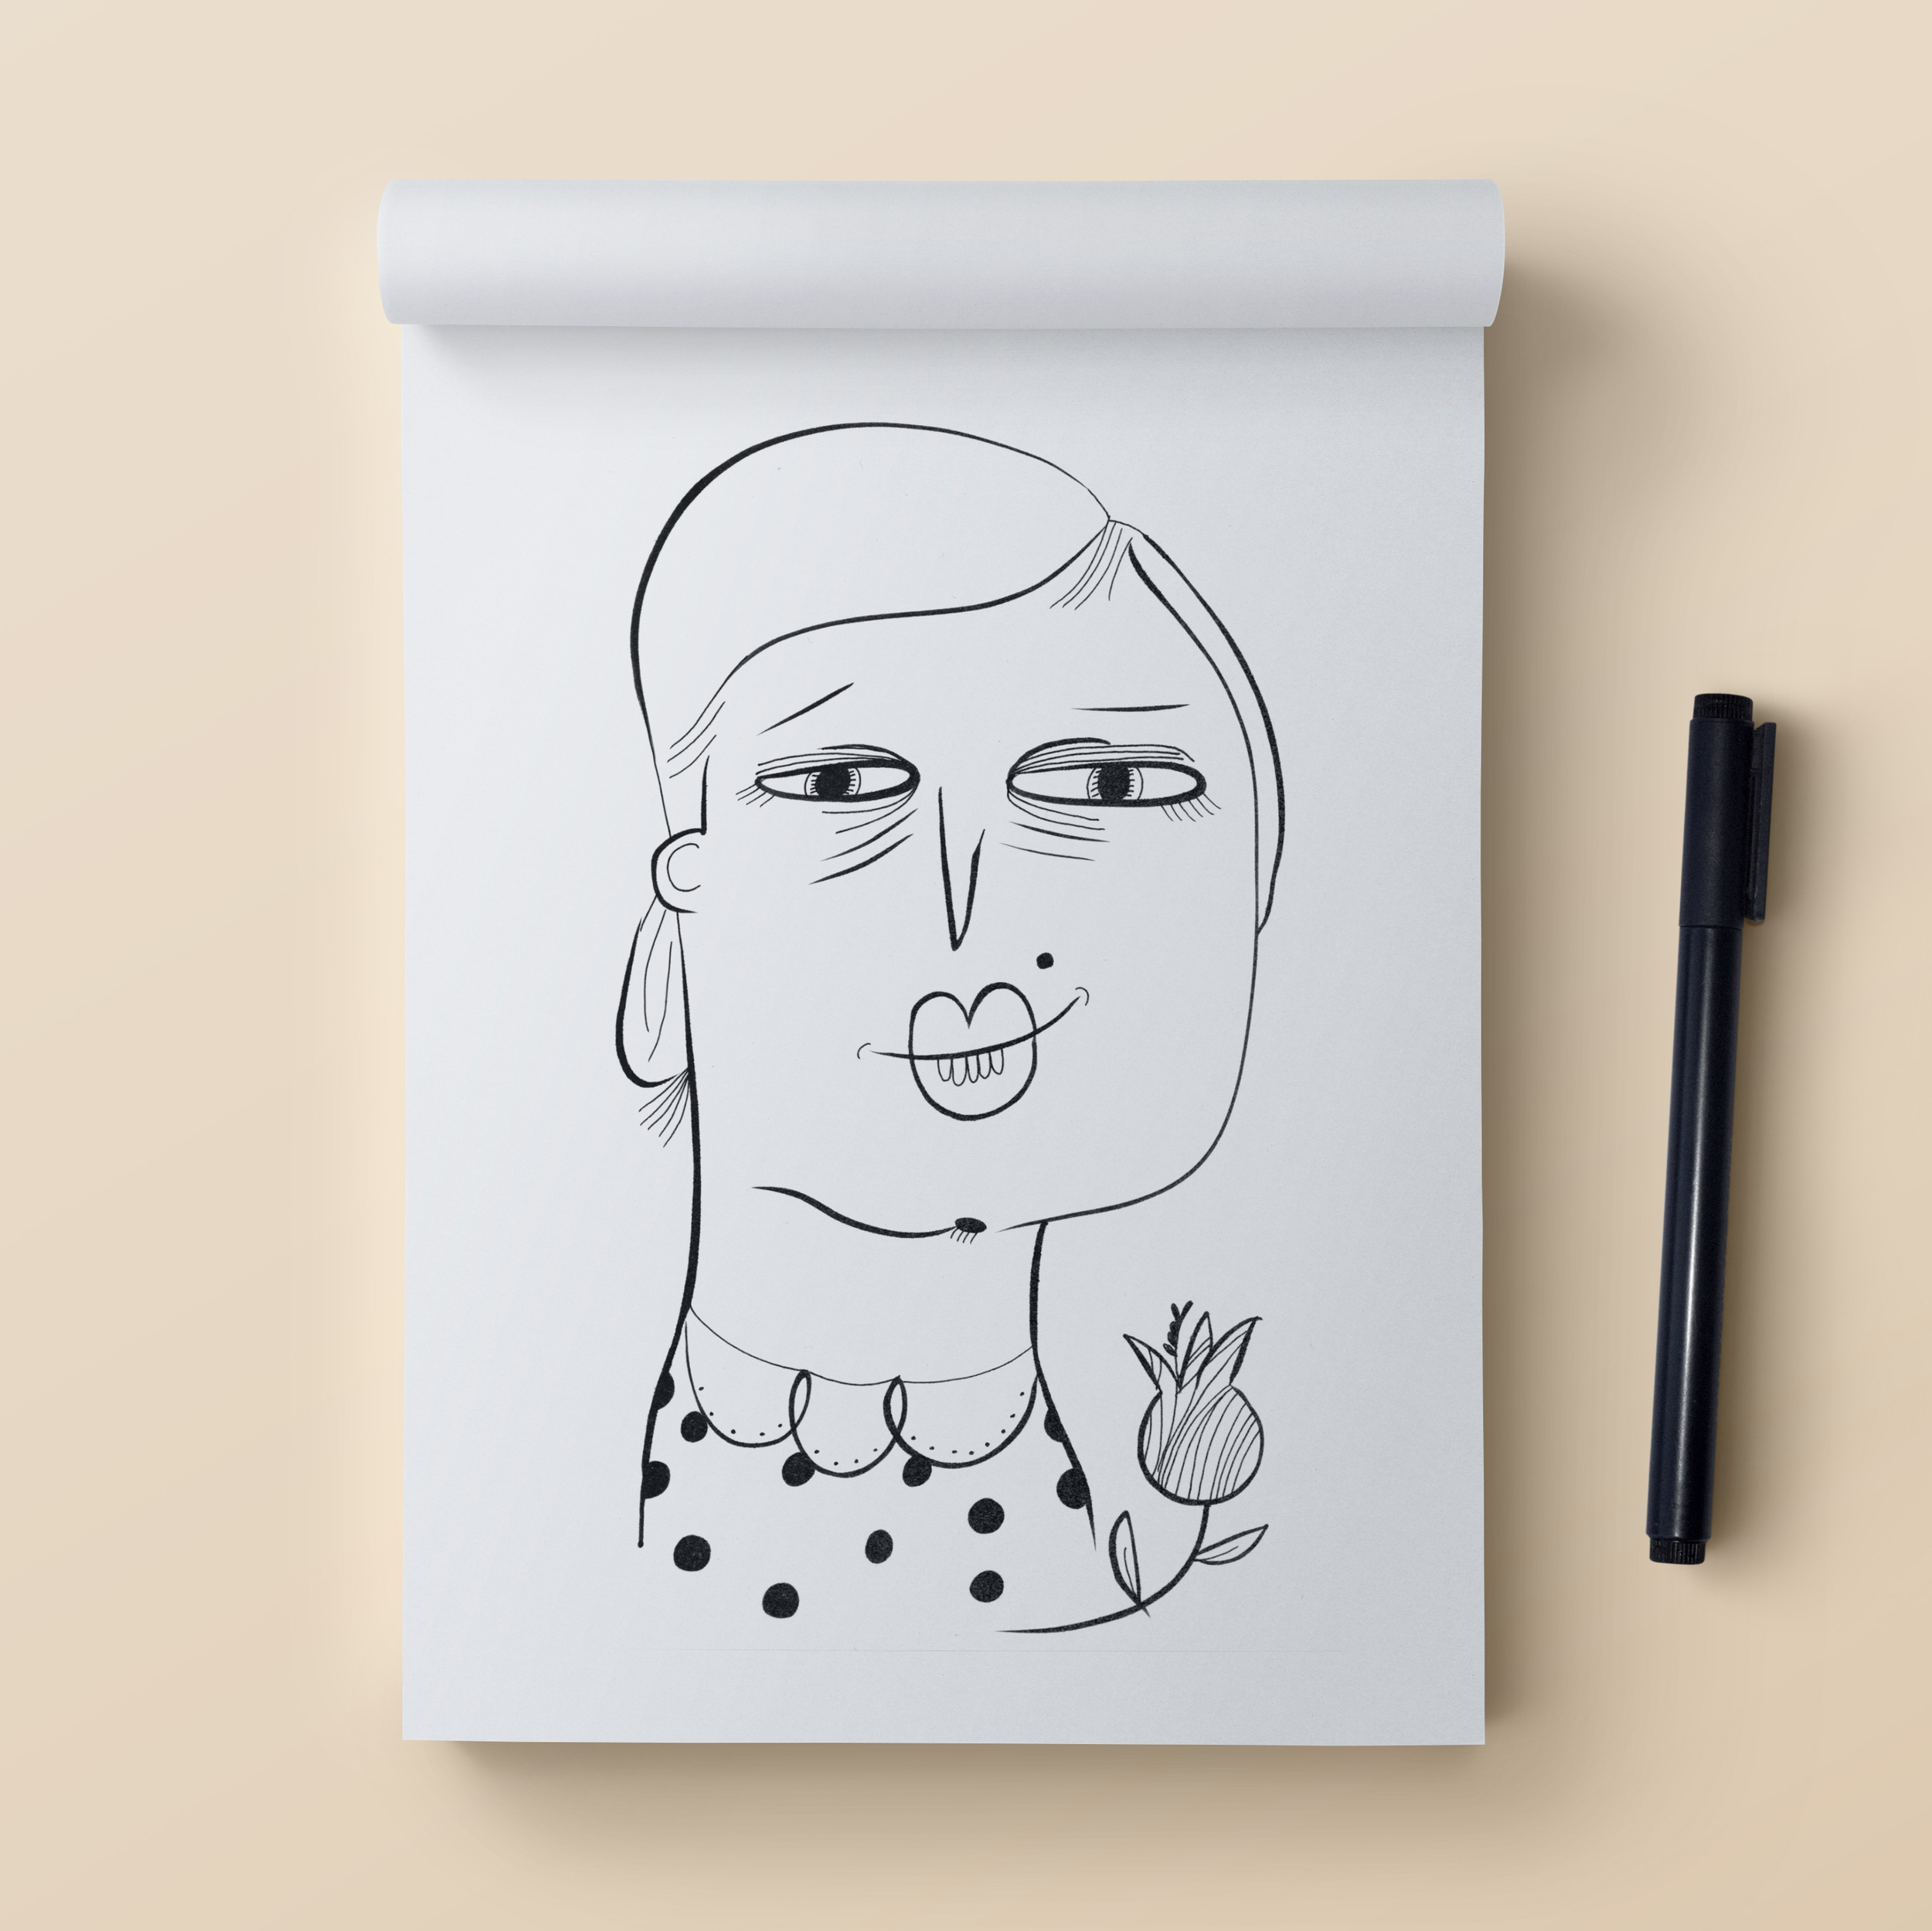 '5 Minute Face' illustration created with the Staedtler Marsgraphic 3000 Duo